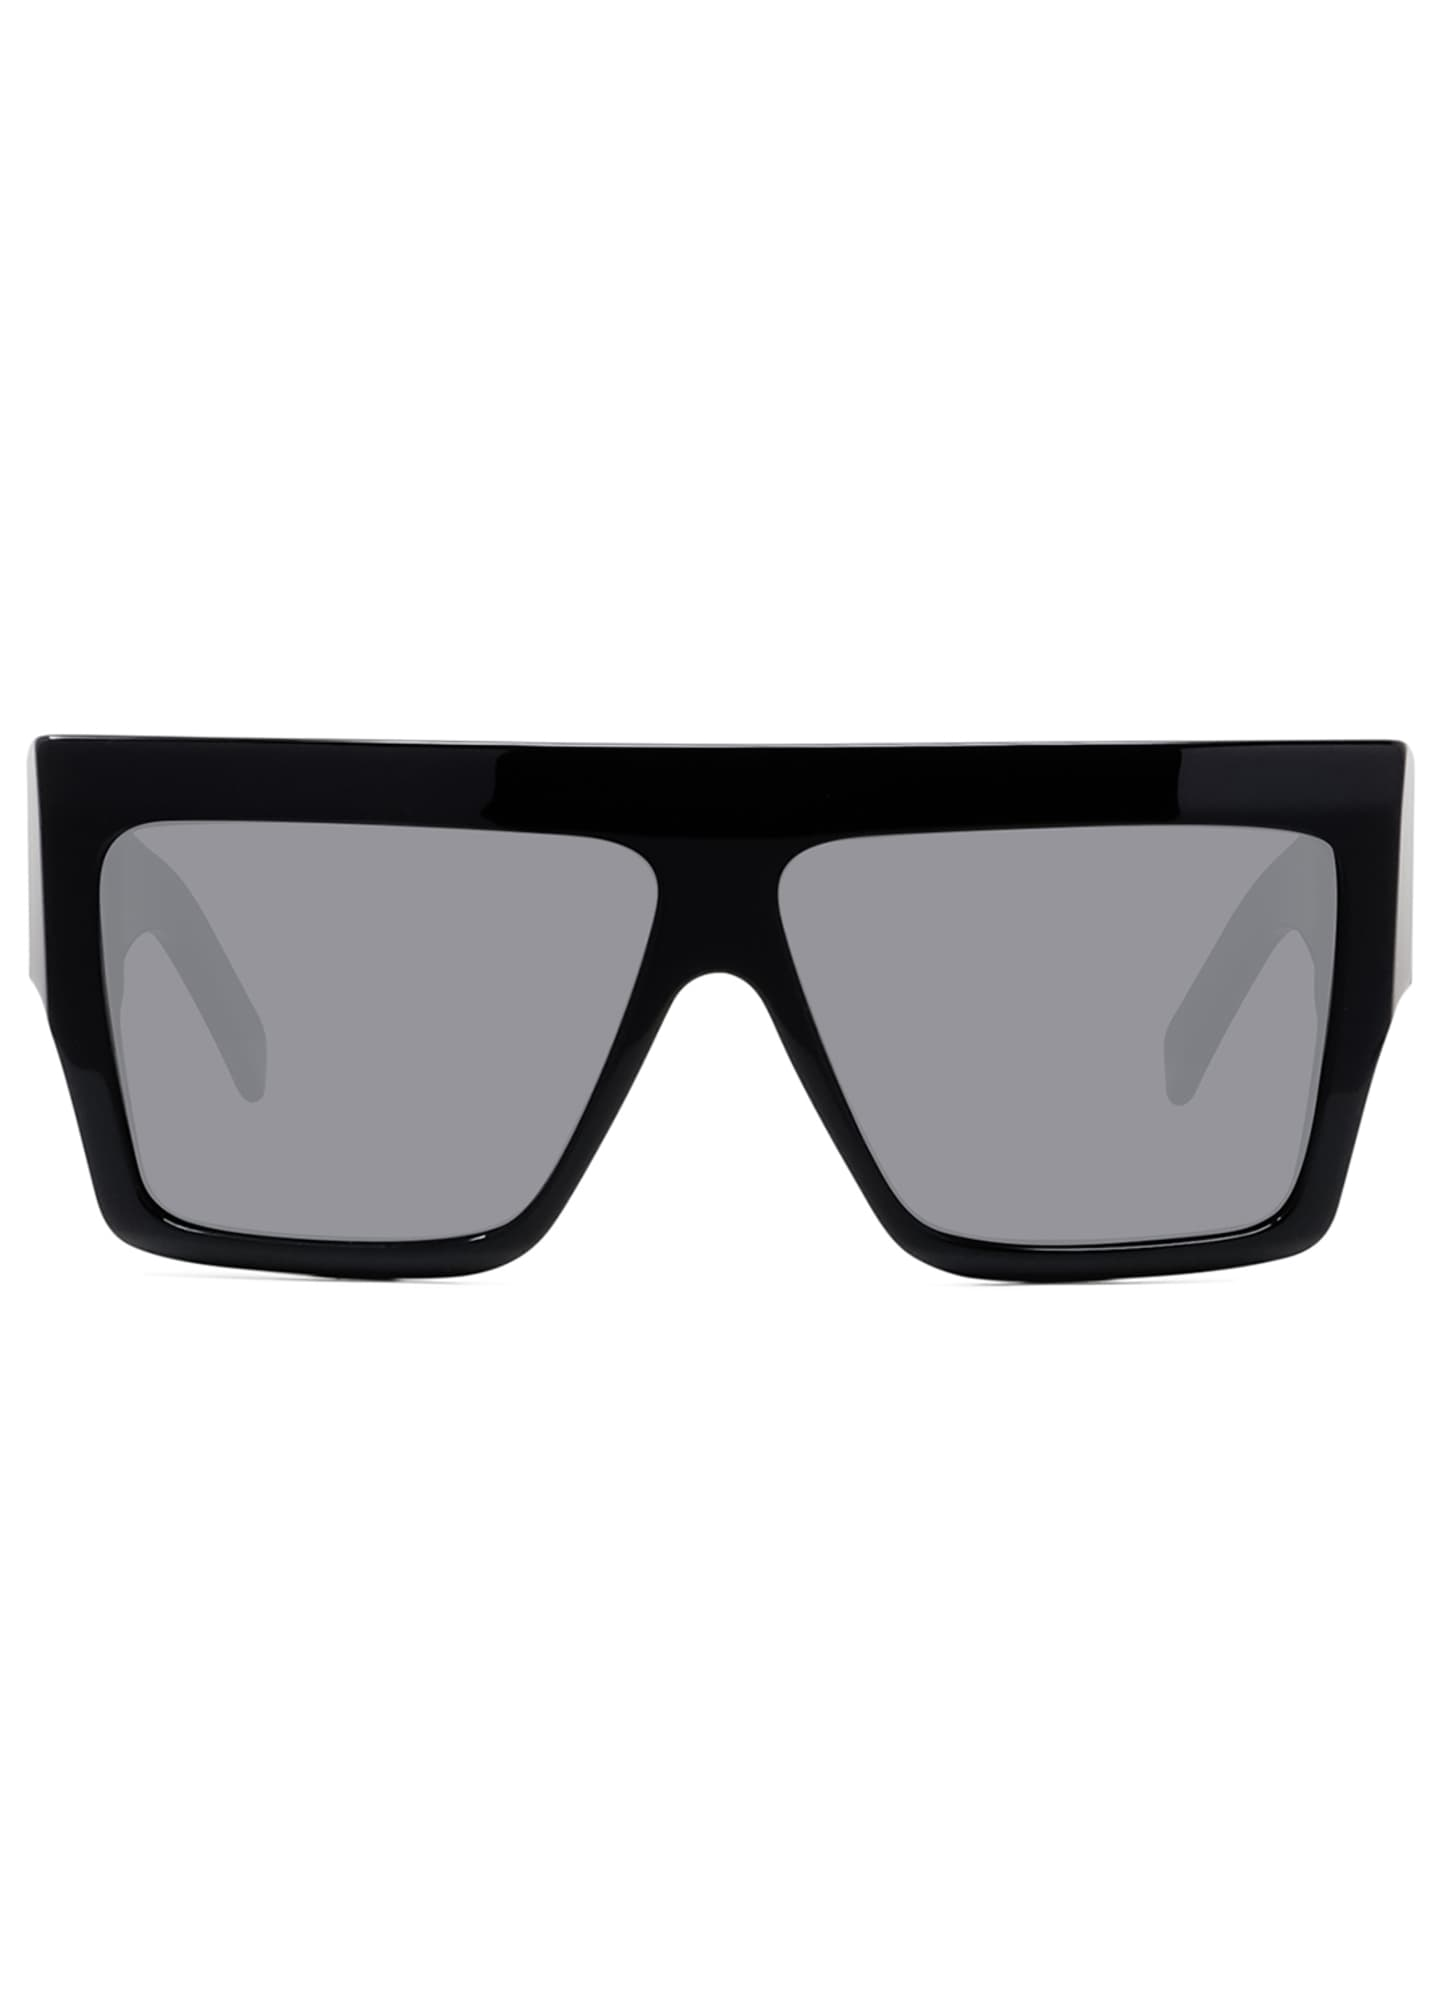 Image 2 of 2: Men's Chunky Rectangle Solid Acetate Sunglasses